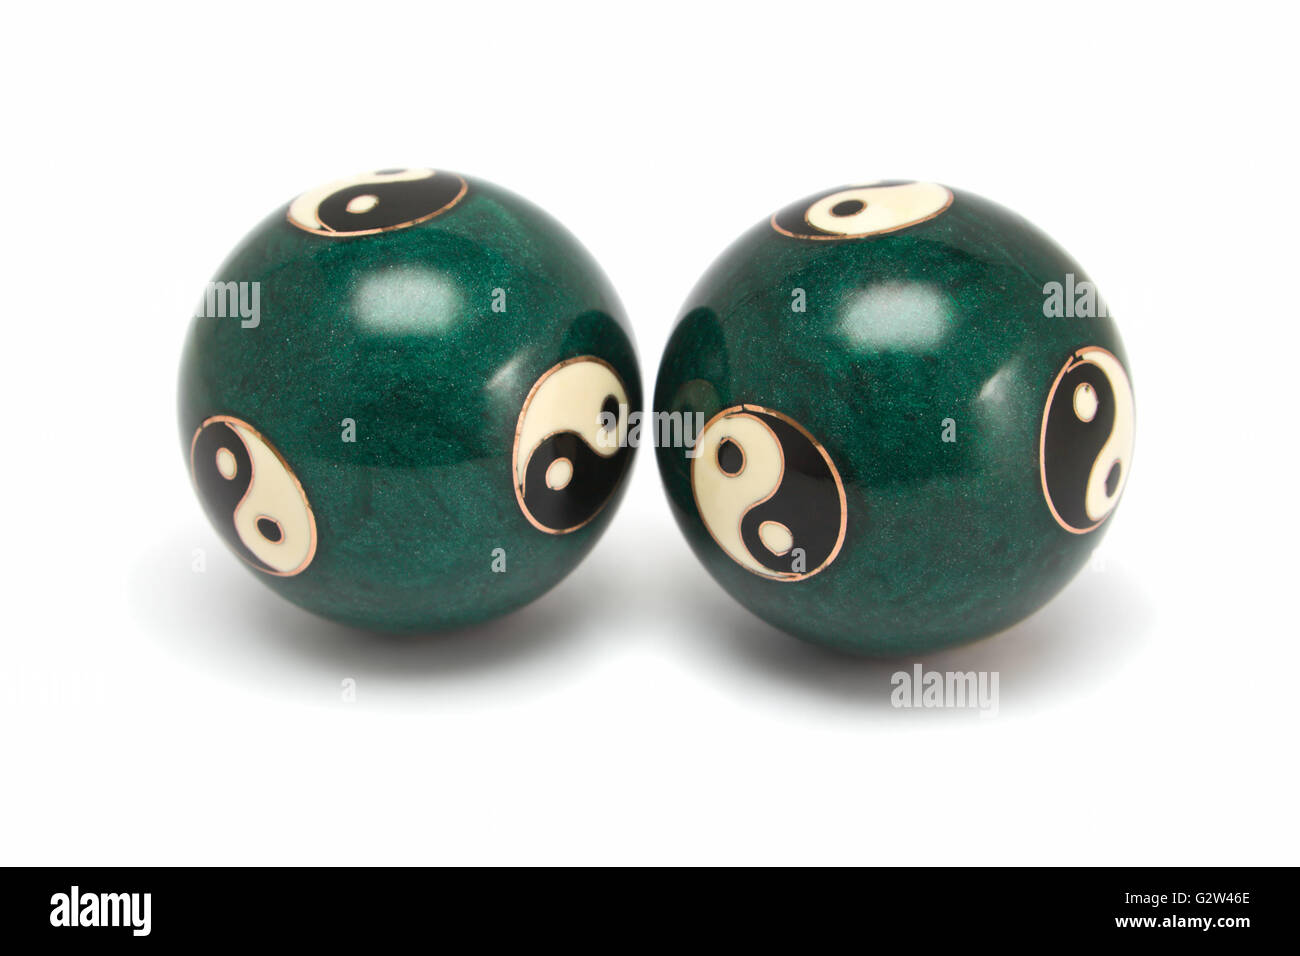 nice-ass-asian-meditation-balls